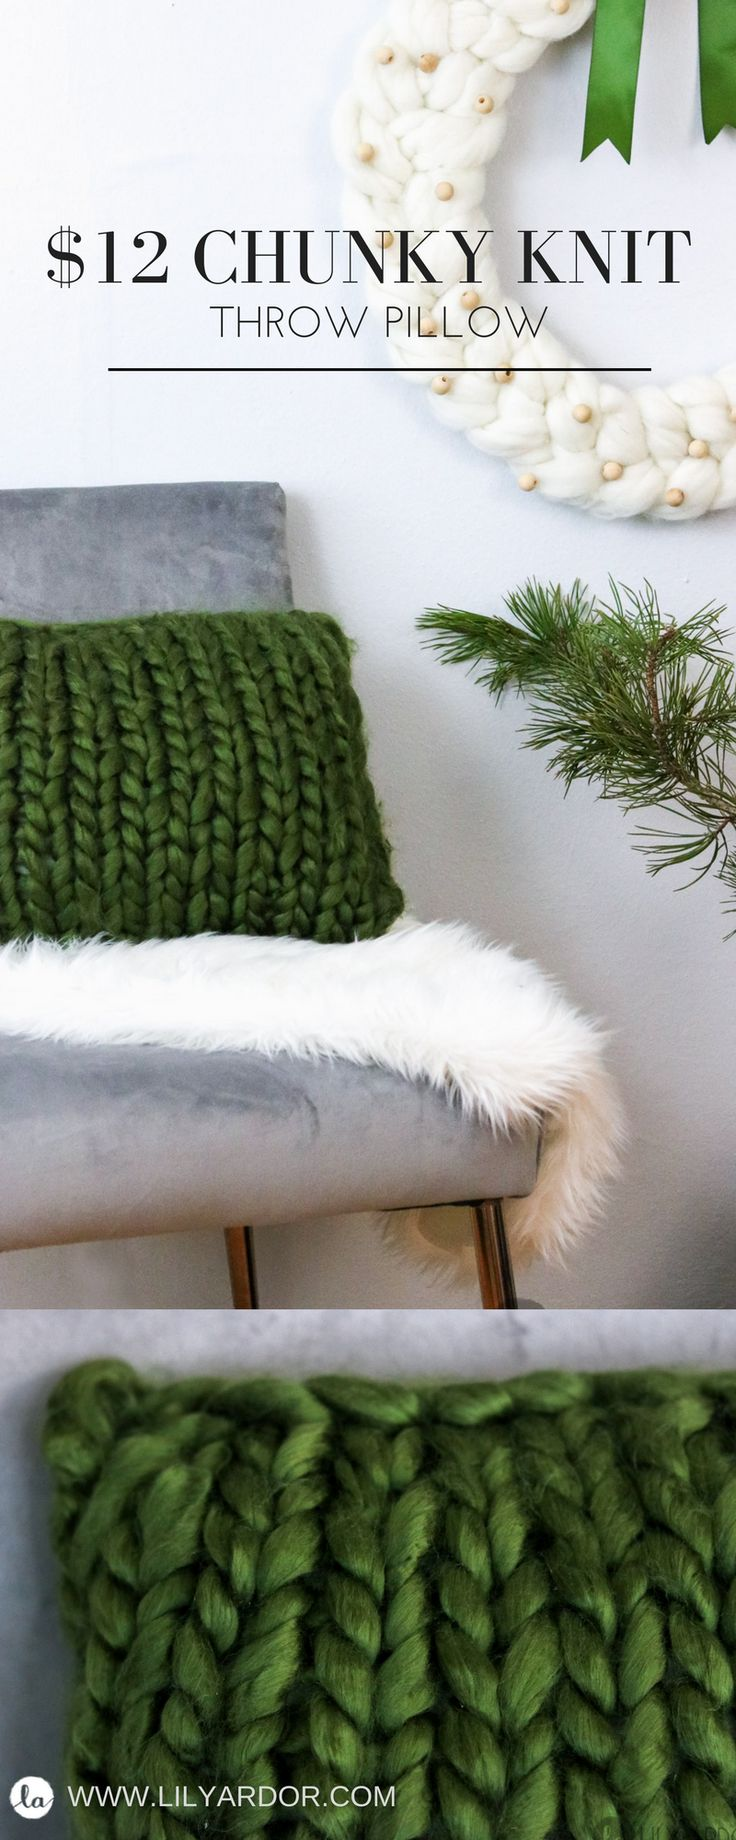 Skip a trip the the homedecor store and make your own chunky knit pillows for only $12 each. Beats $60 any day!